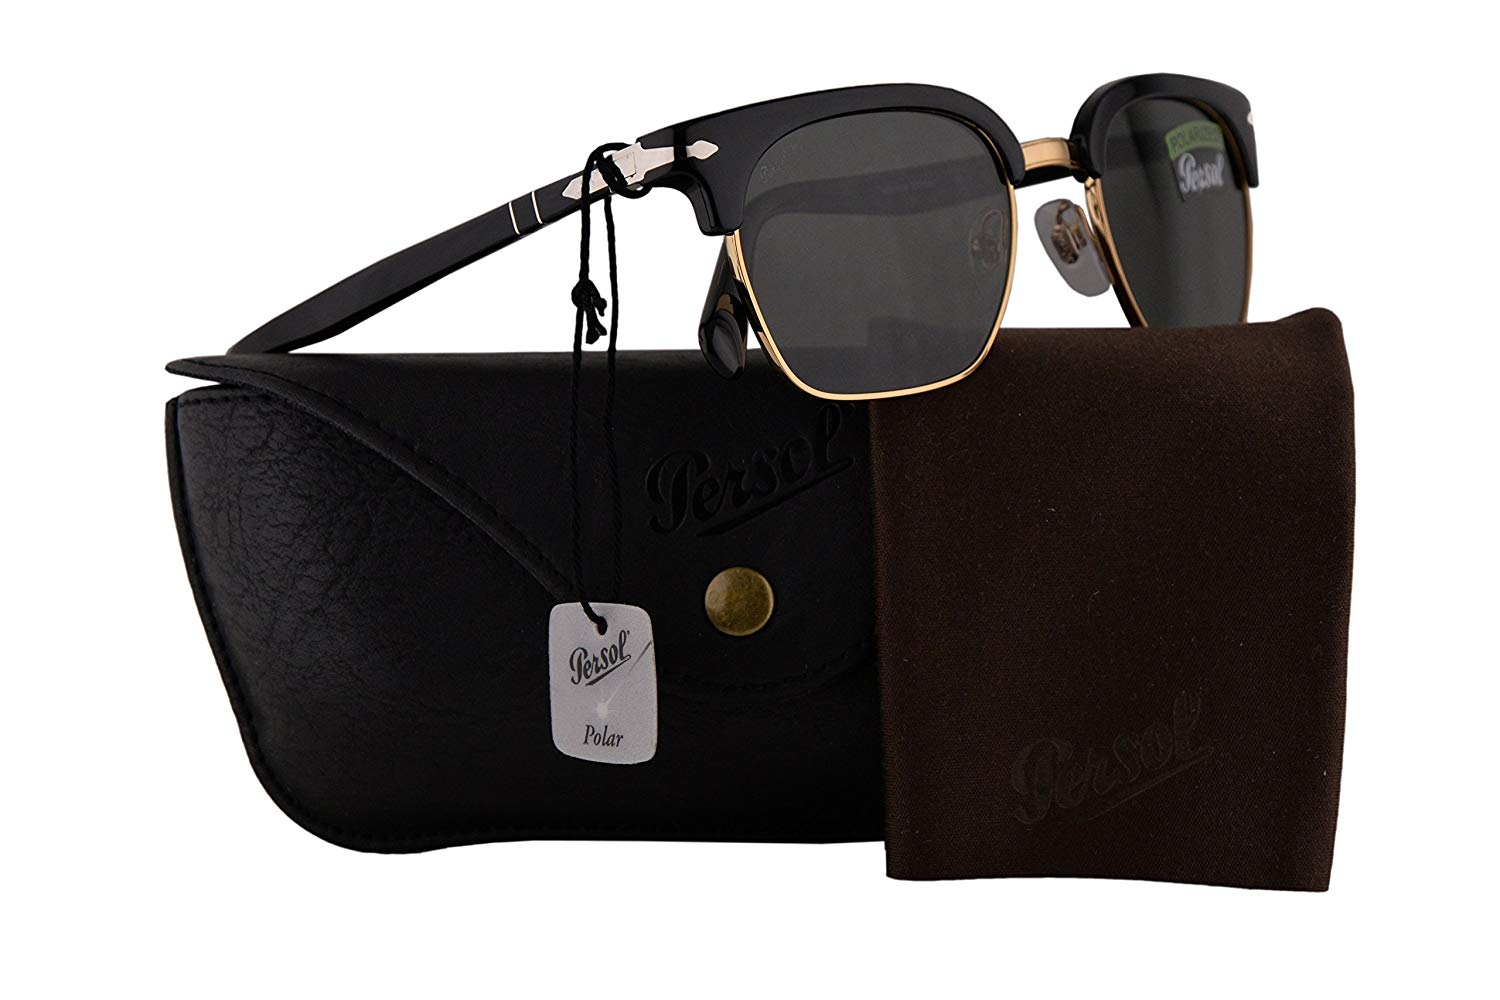 d308528a57 Get Quotations · Persol PO3199S Tailoring Edition Sunglasses Black w  Polarized Green Lens 50mm 9558 PO 3199-